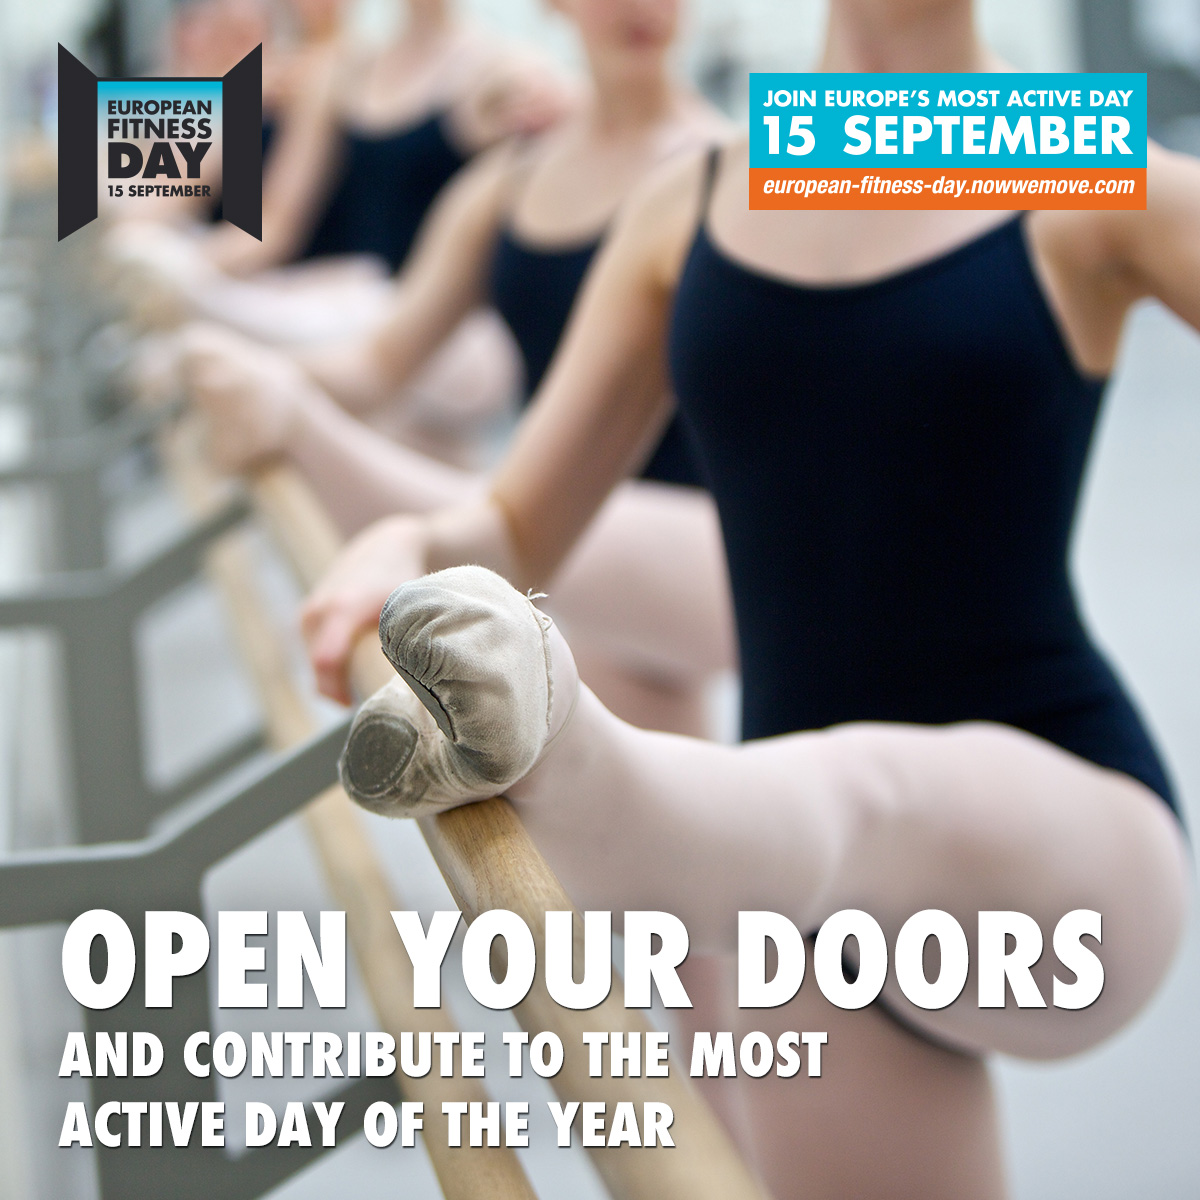 European Fitness Day